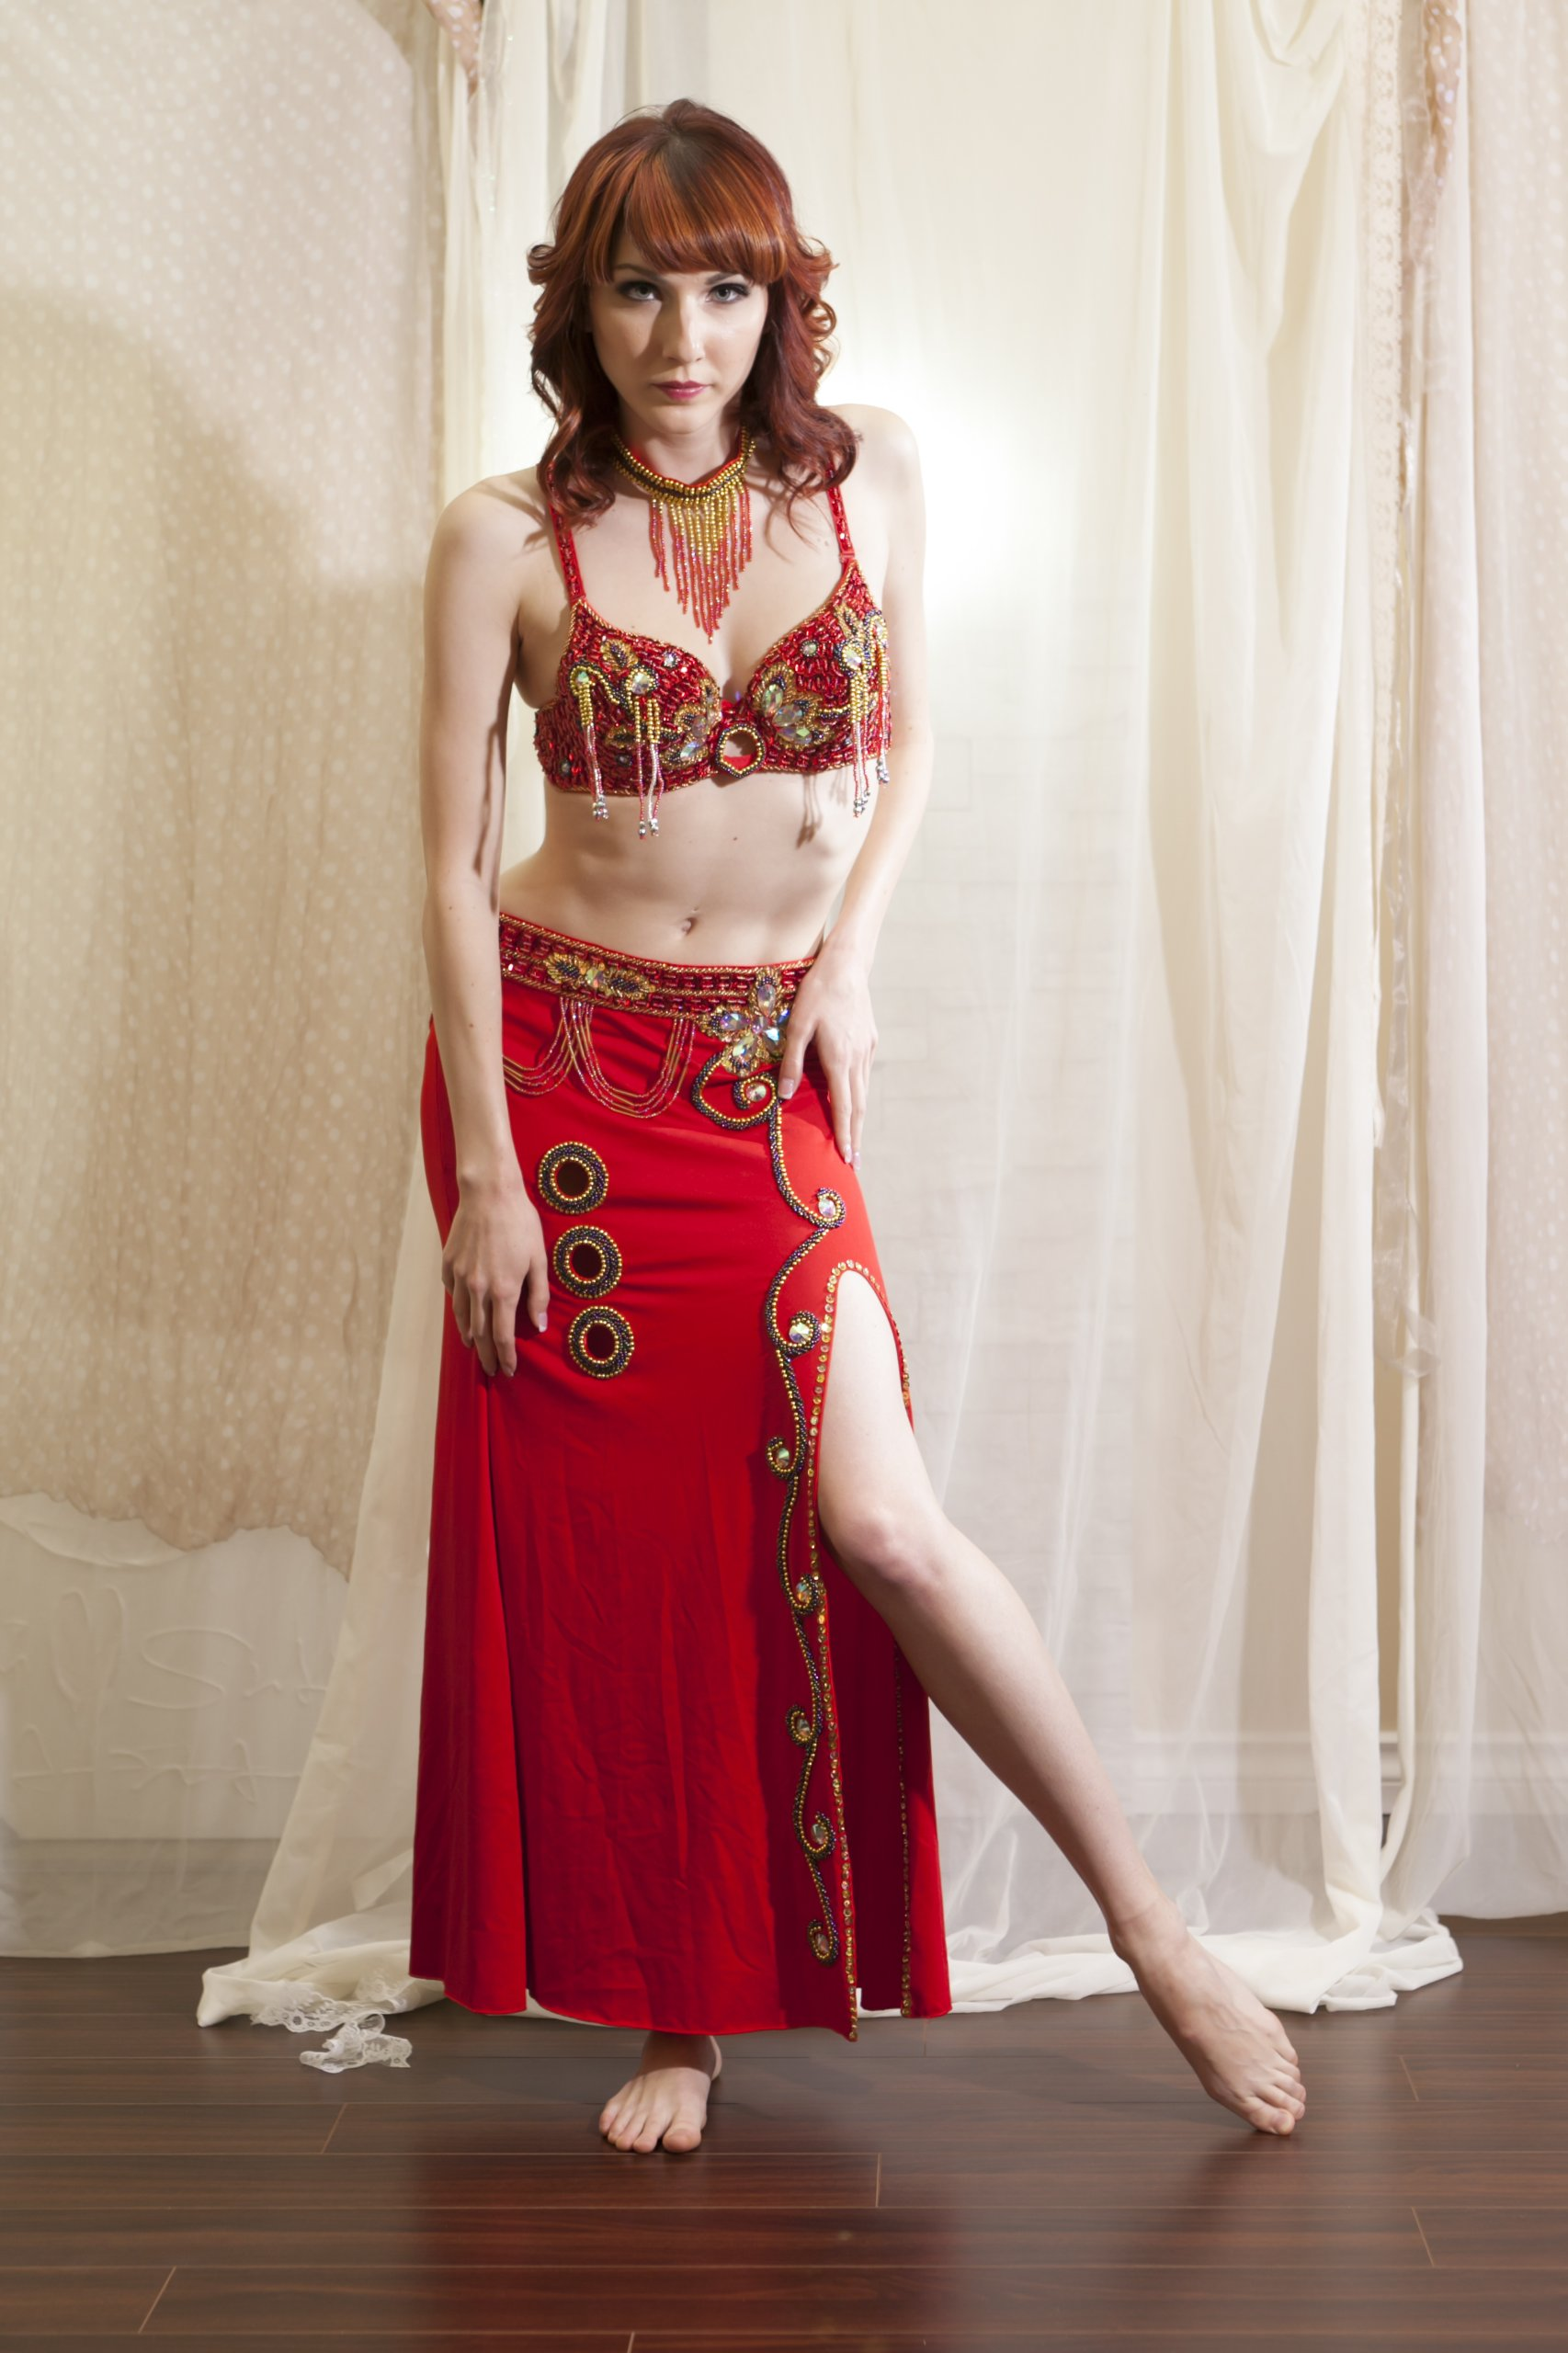 Belly Dance Bra Top & Stretchy Skirt Costume Set --Red 36A